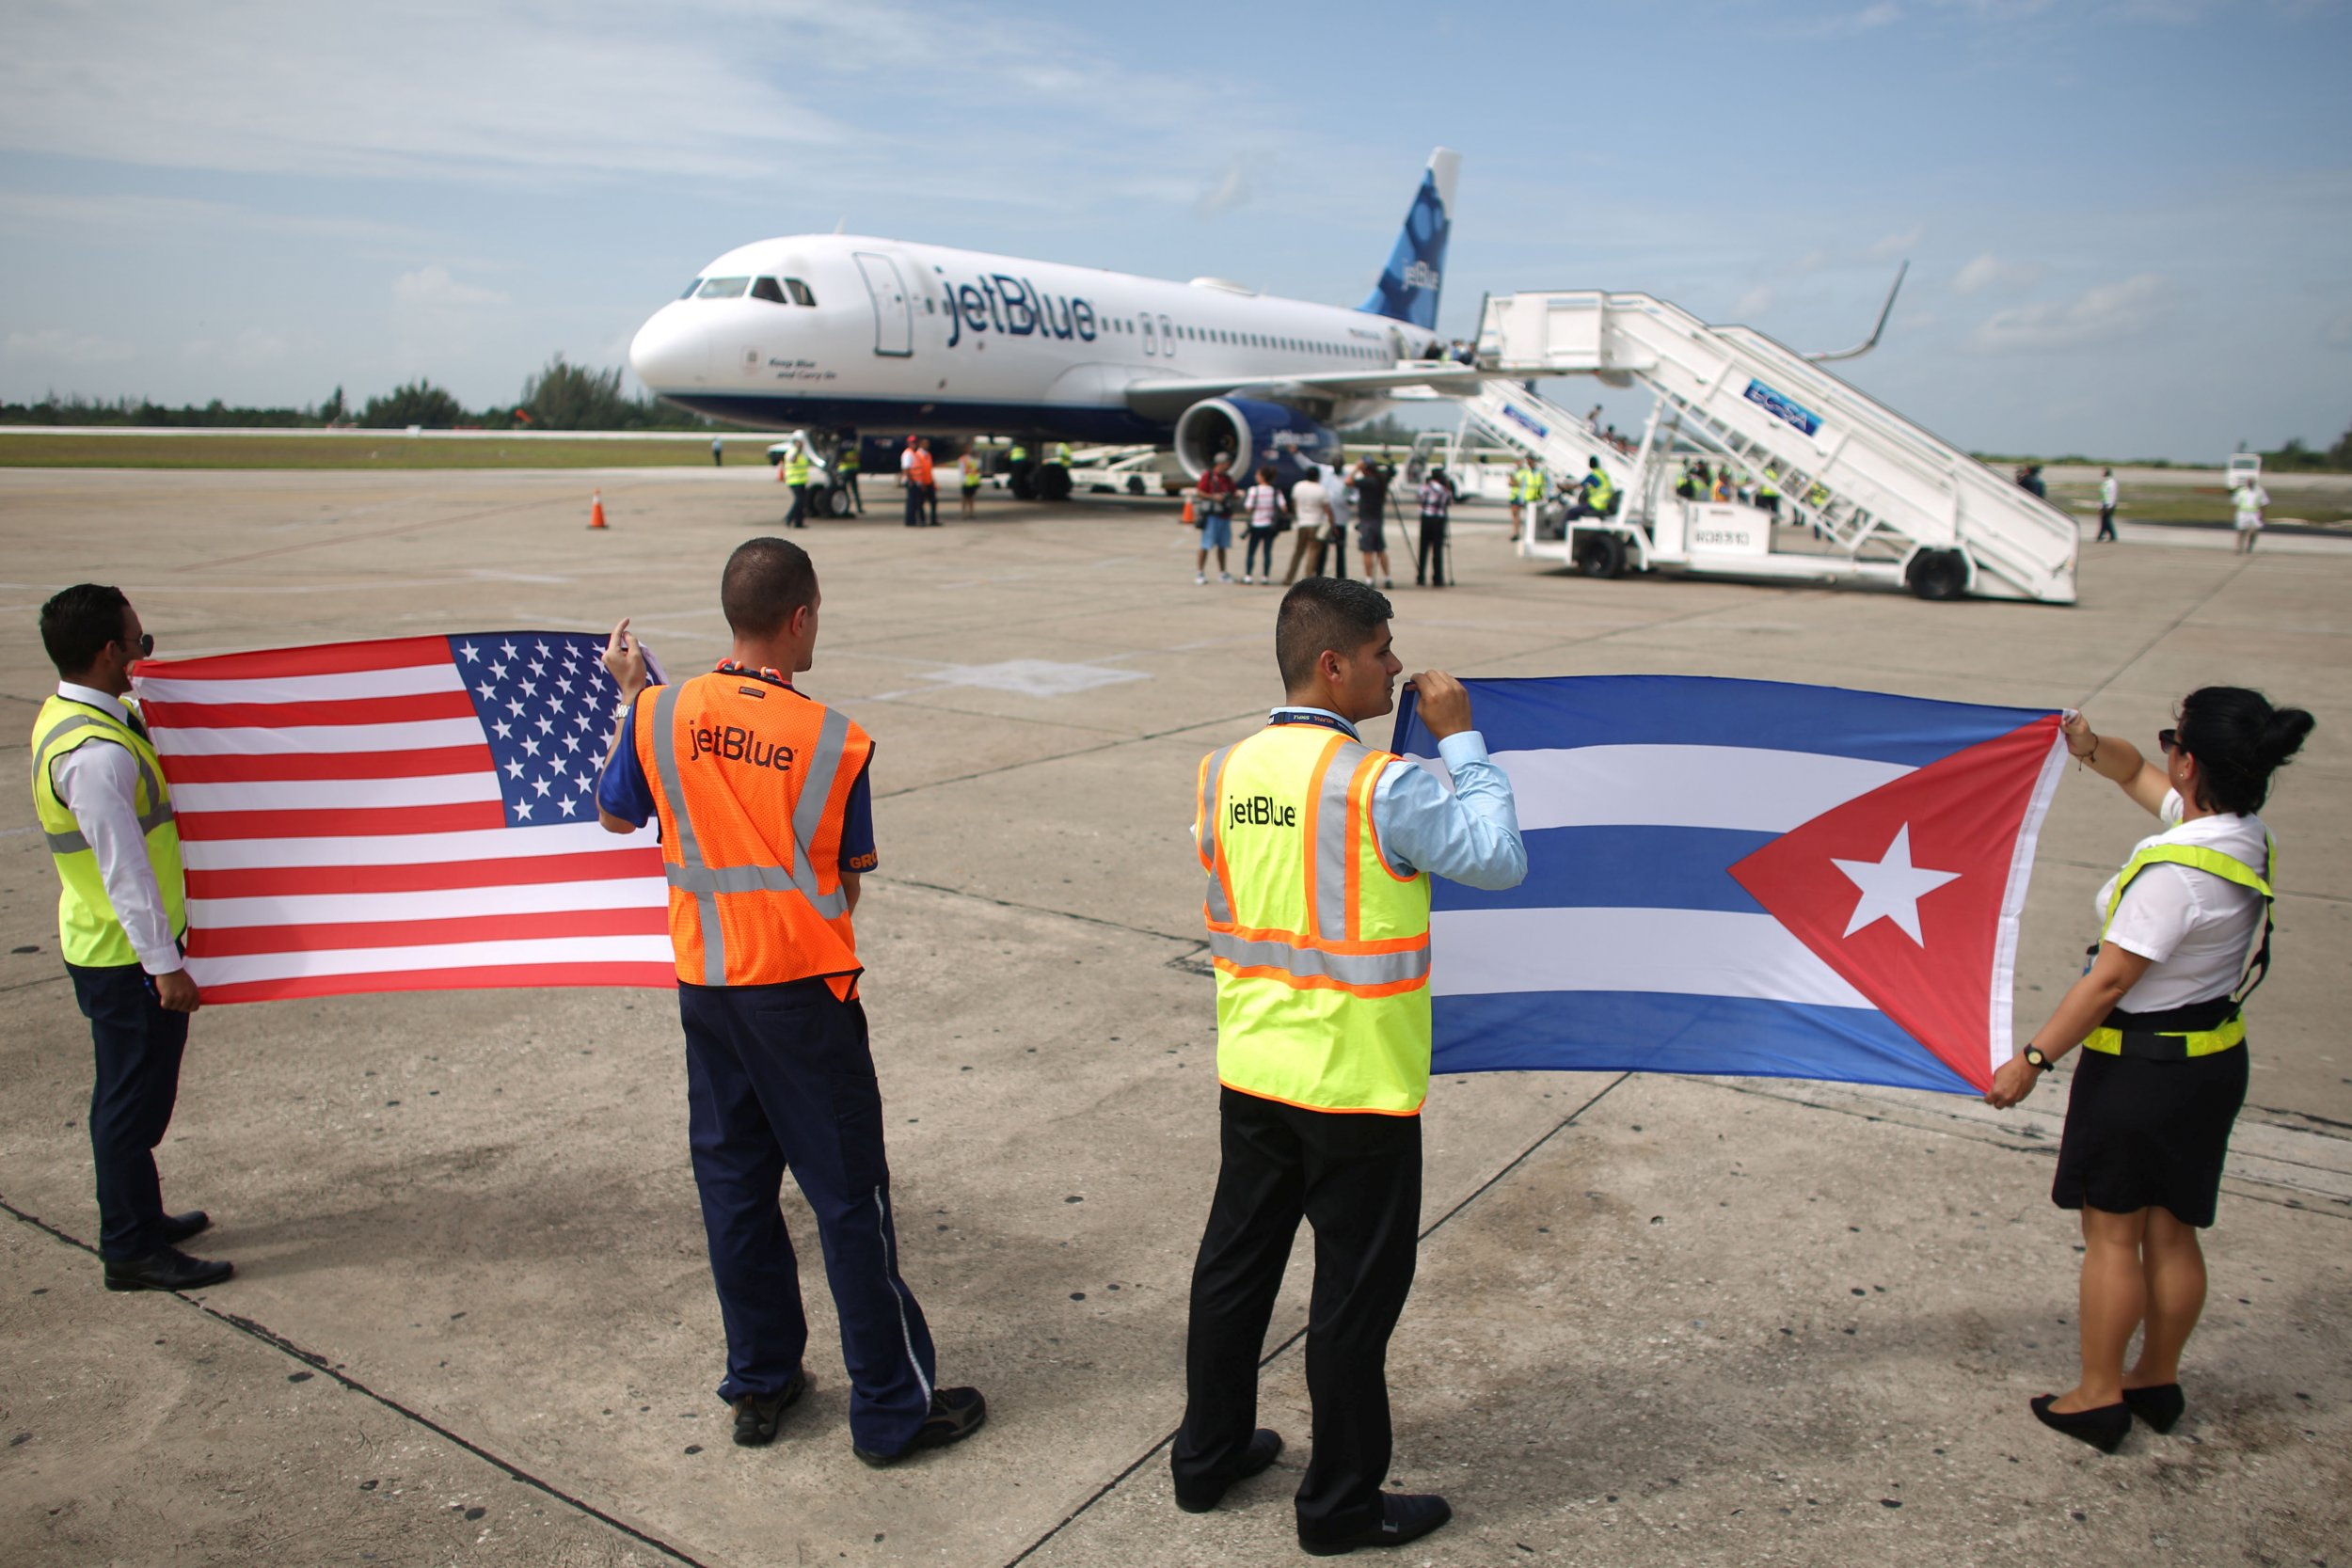 U.S. and Cuban flags